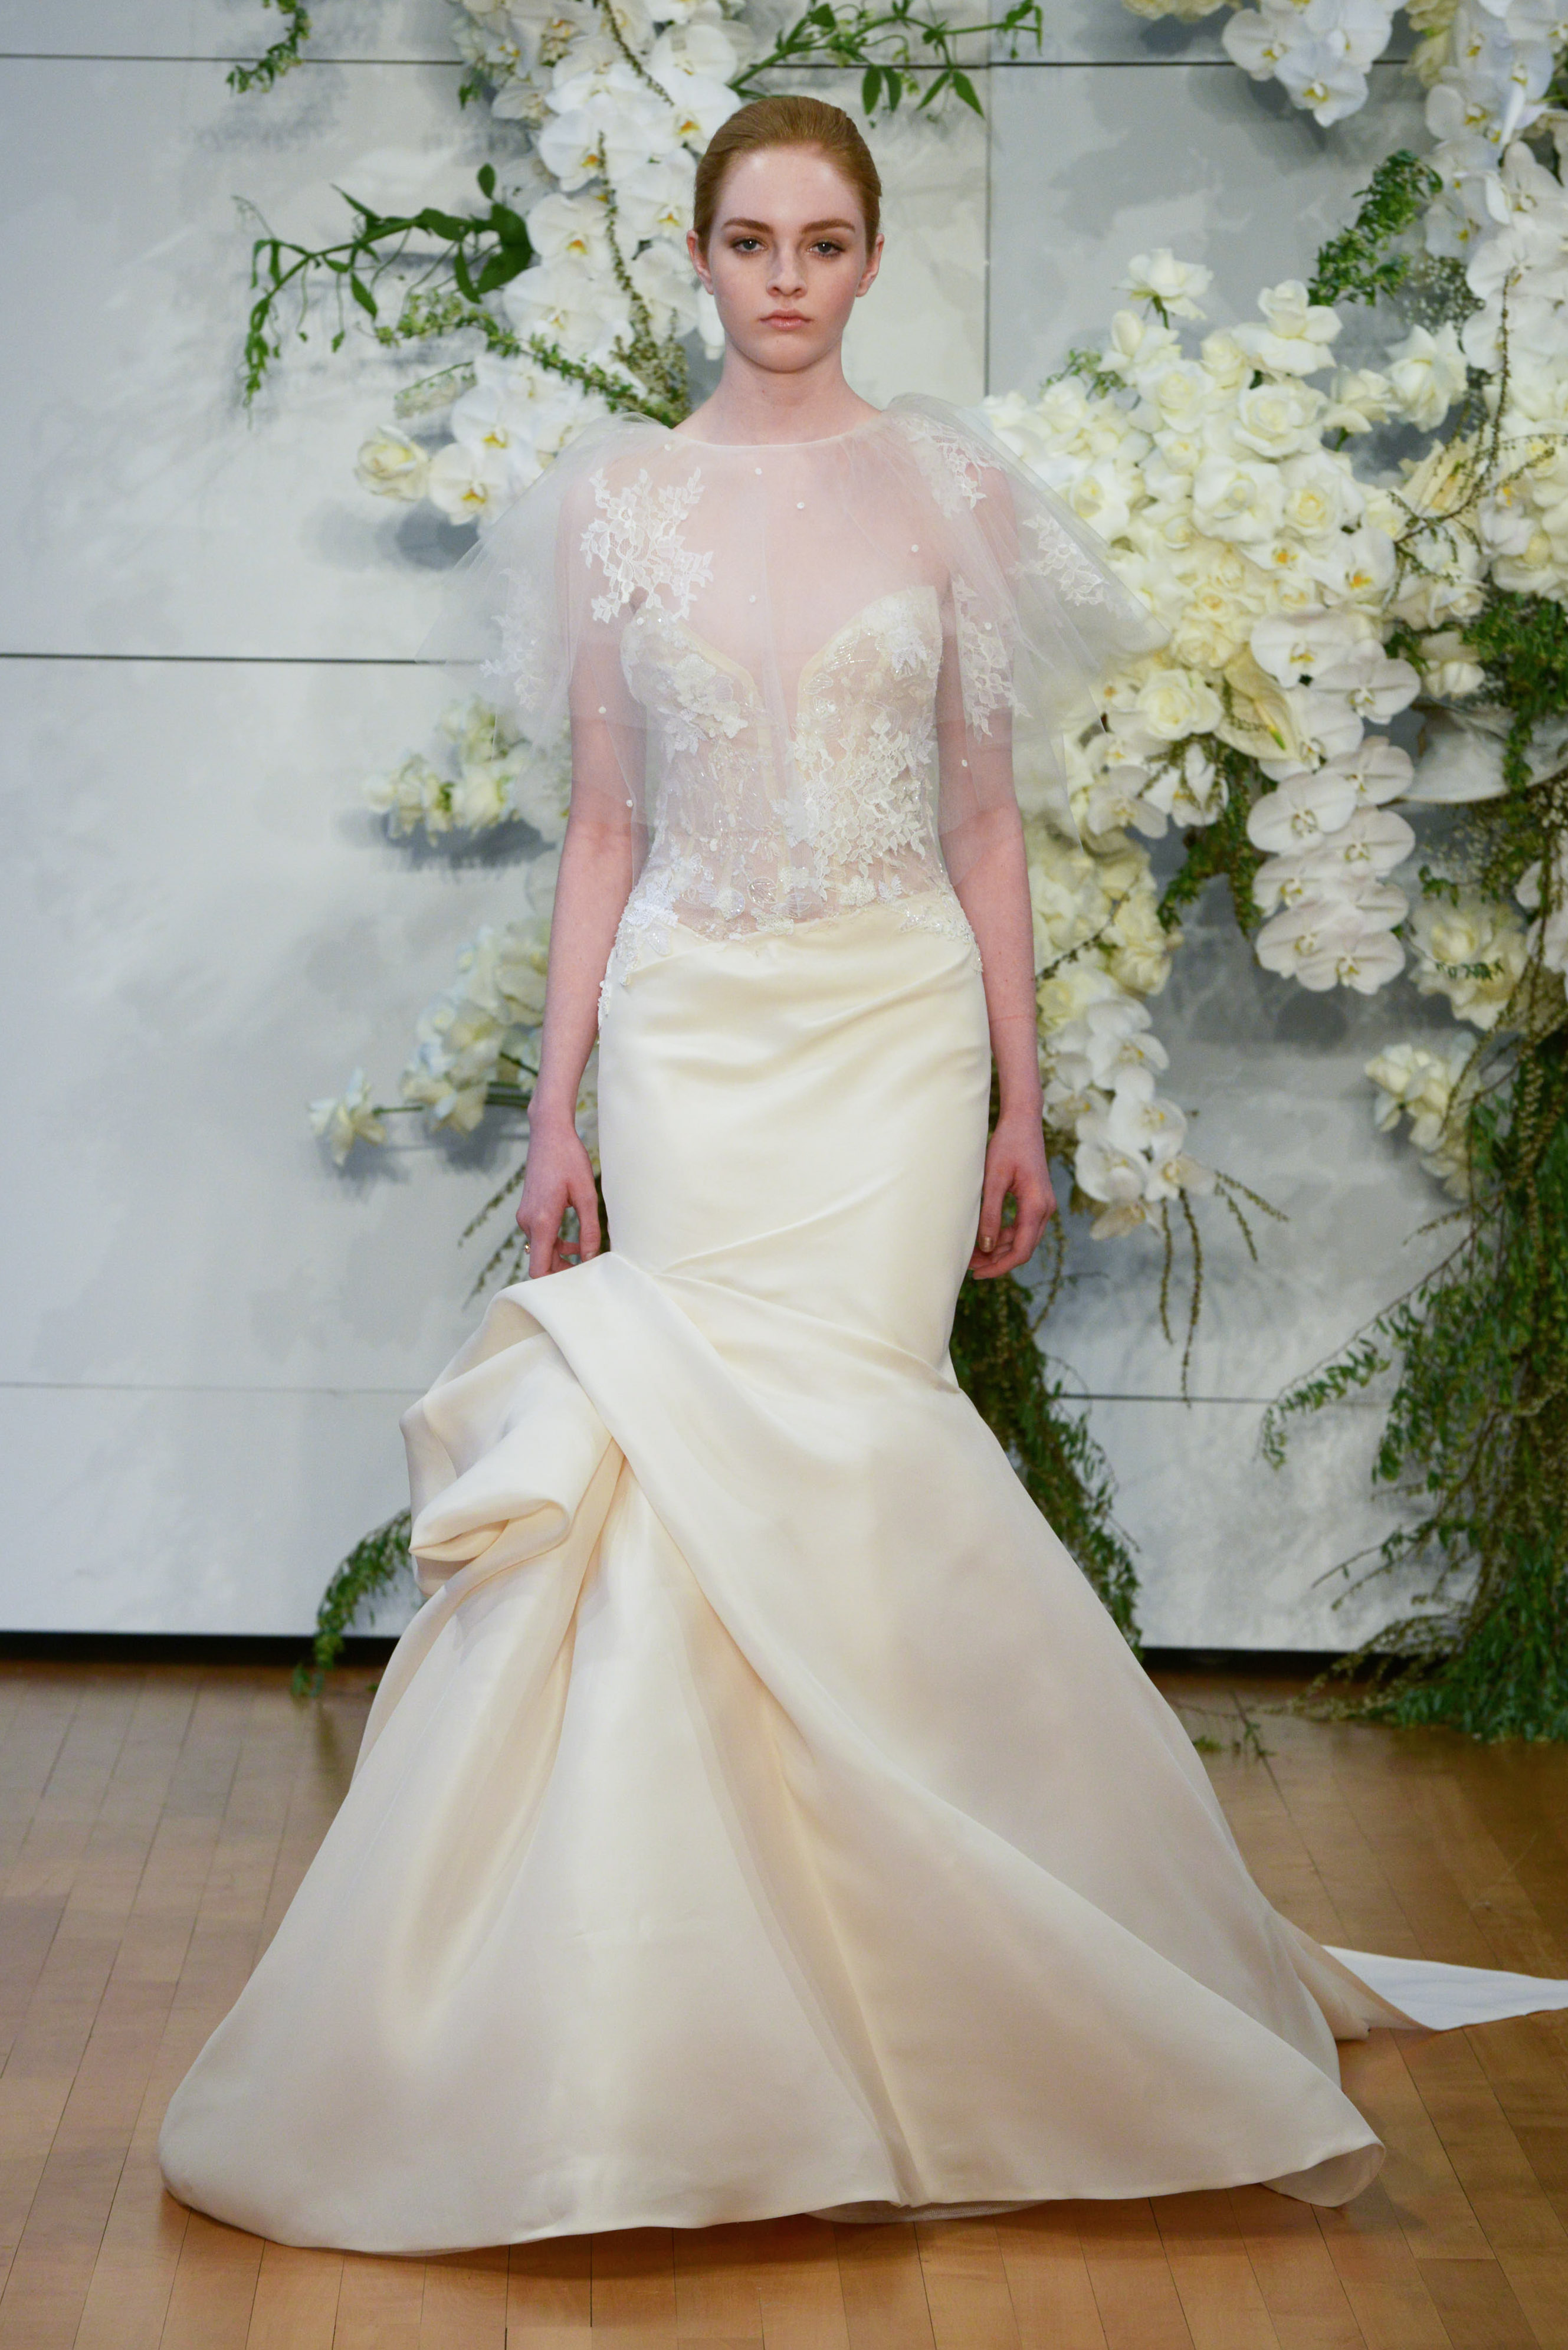 15 jamie wedding dresses